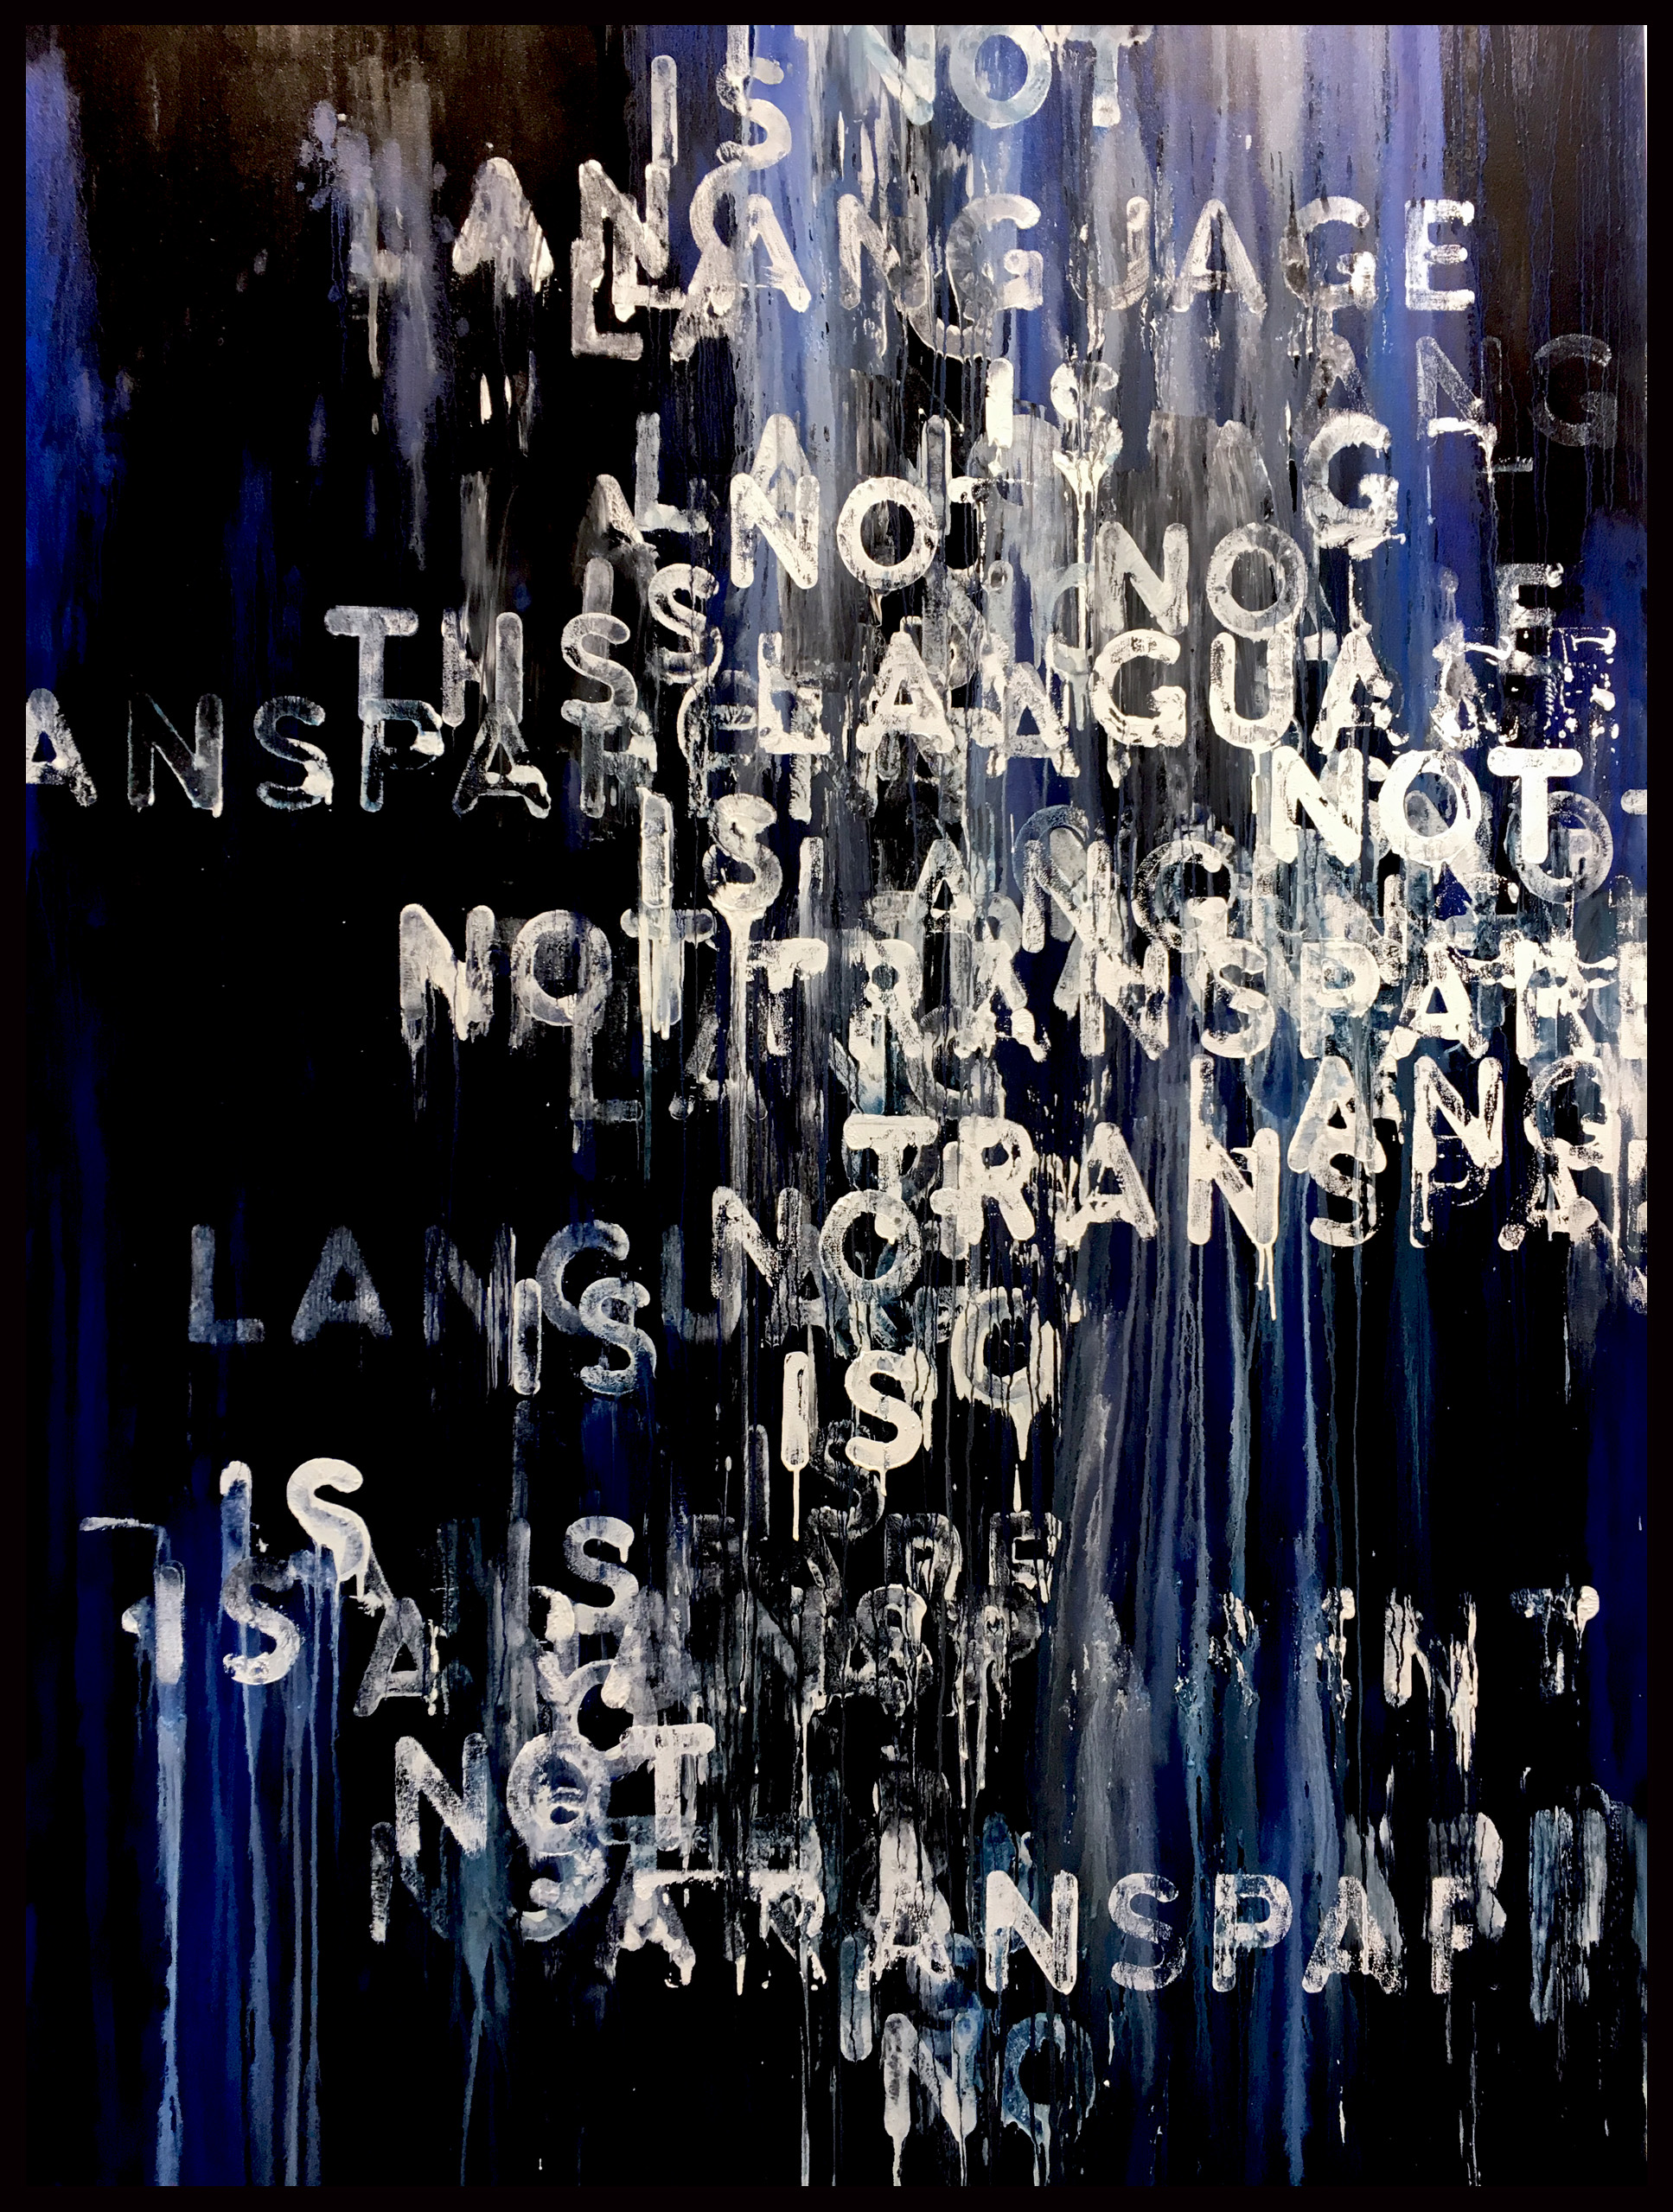 language-is-not-transparent_mel-bochner-_-peter-freeman-inc_@loeildoliv